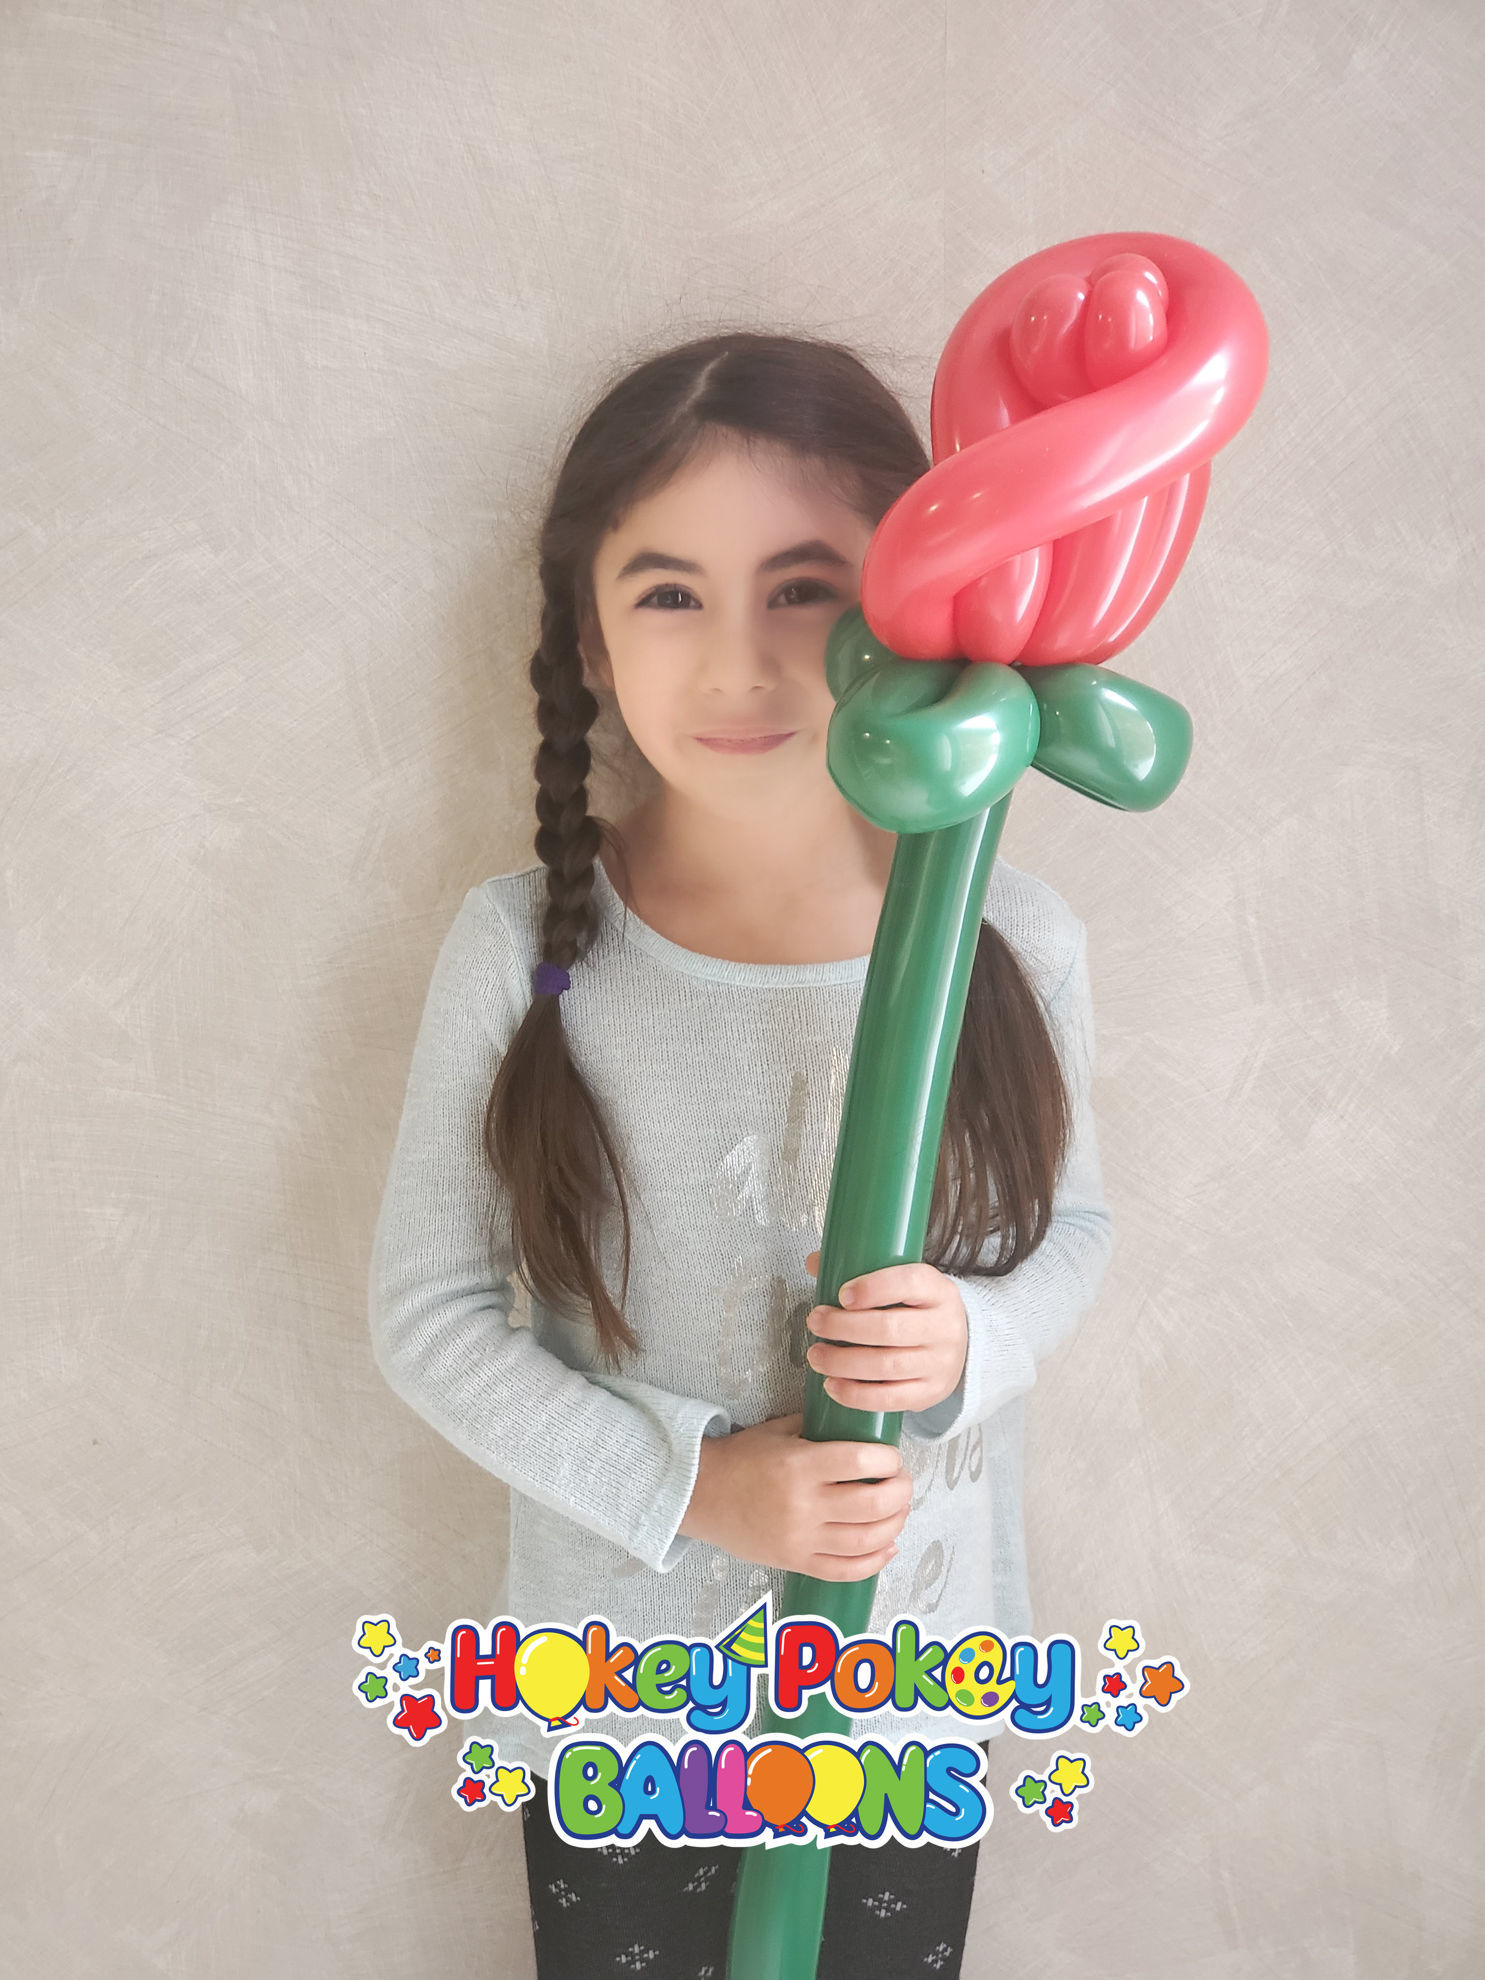 Picture of Rose - Balloon